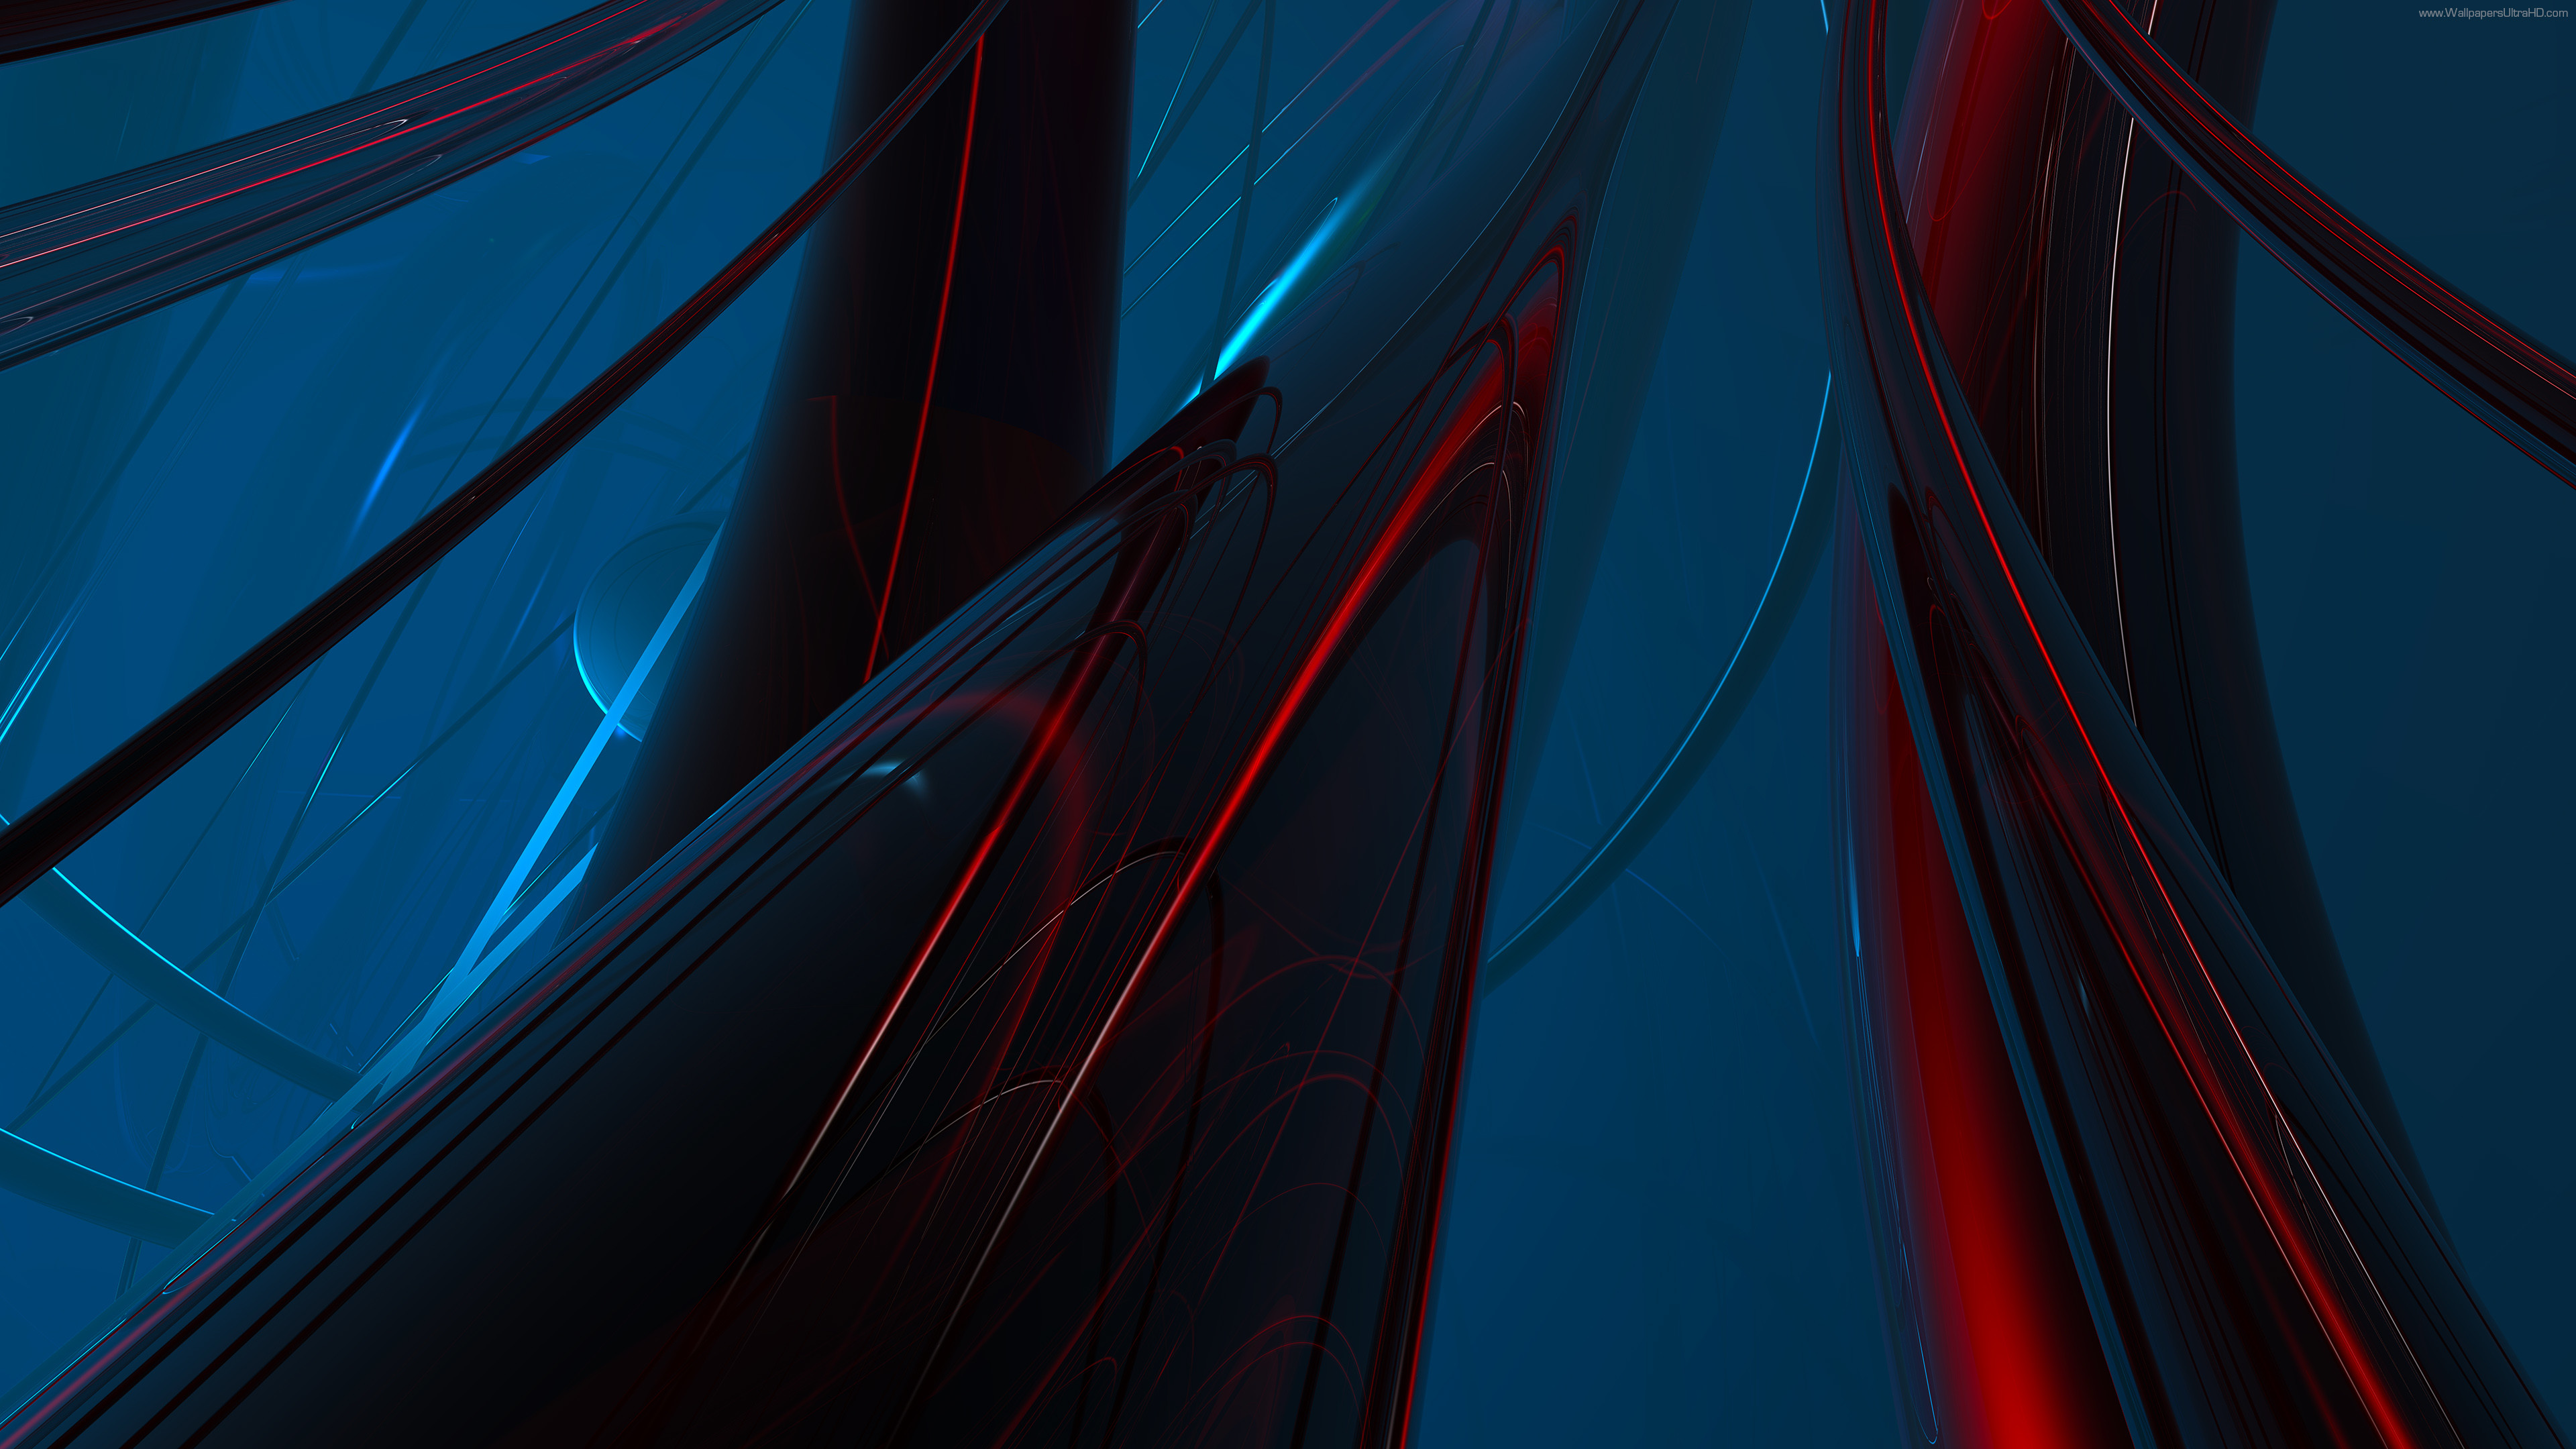 UHD wallpapers 4K Abstract red + blue, Abstract green + purple .